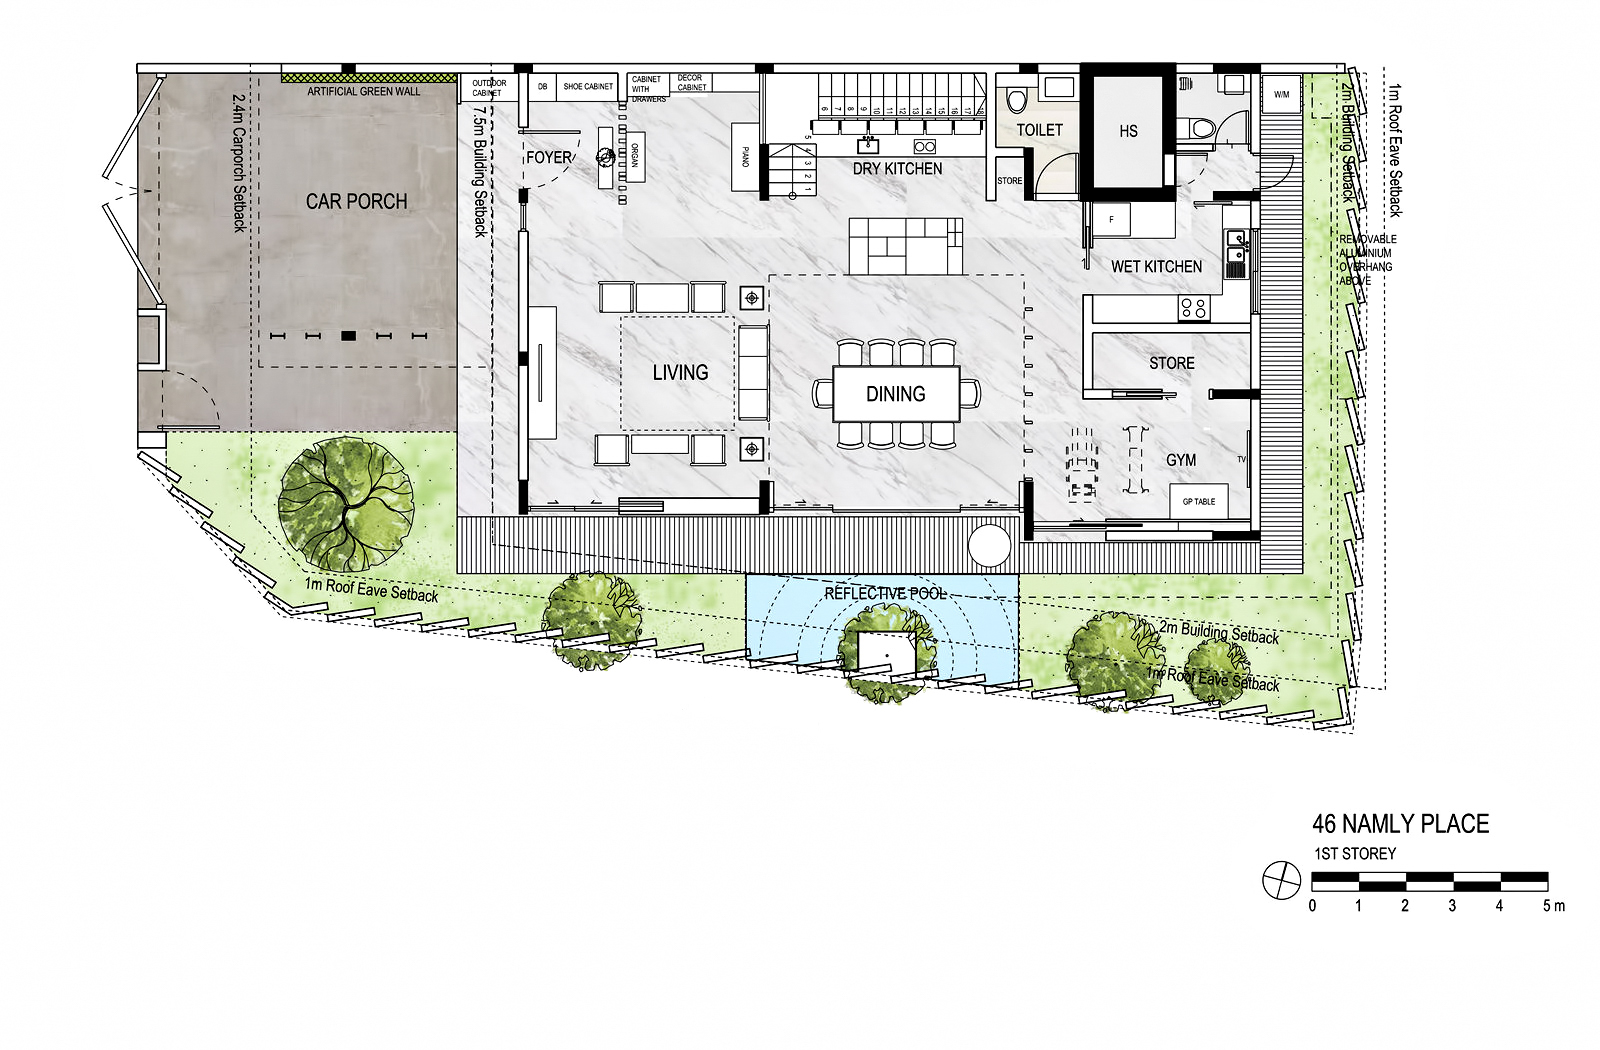 First Floor Plan - The Loft House Luxury Residence - Namly Place, Singapore